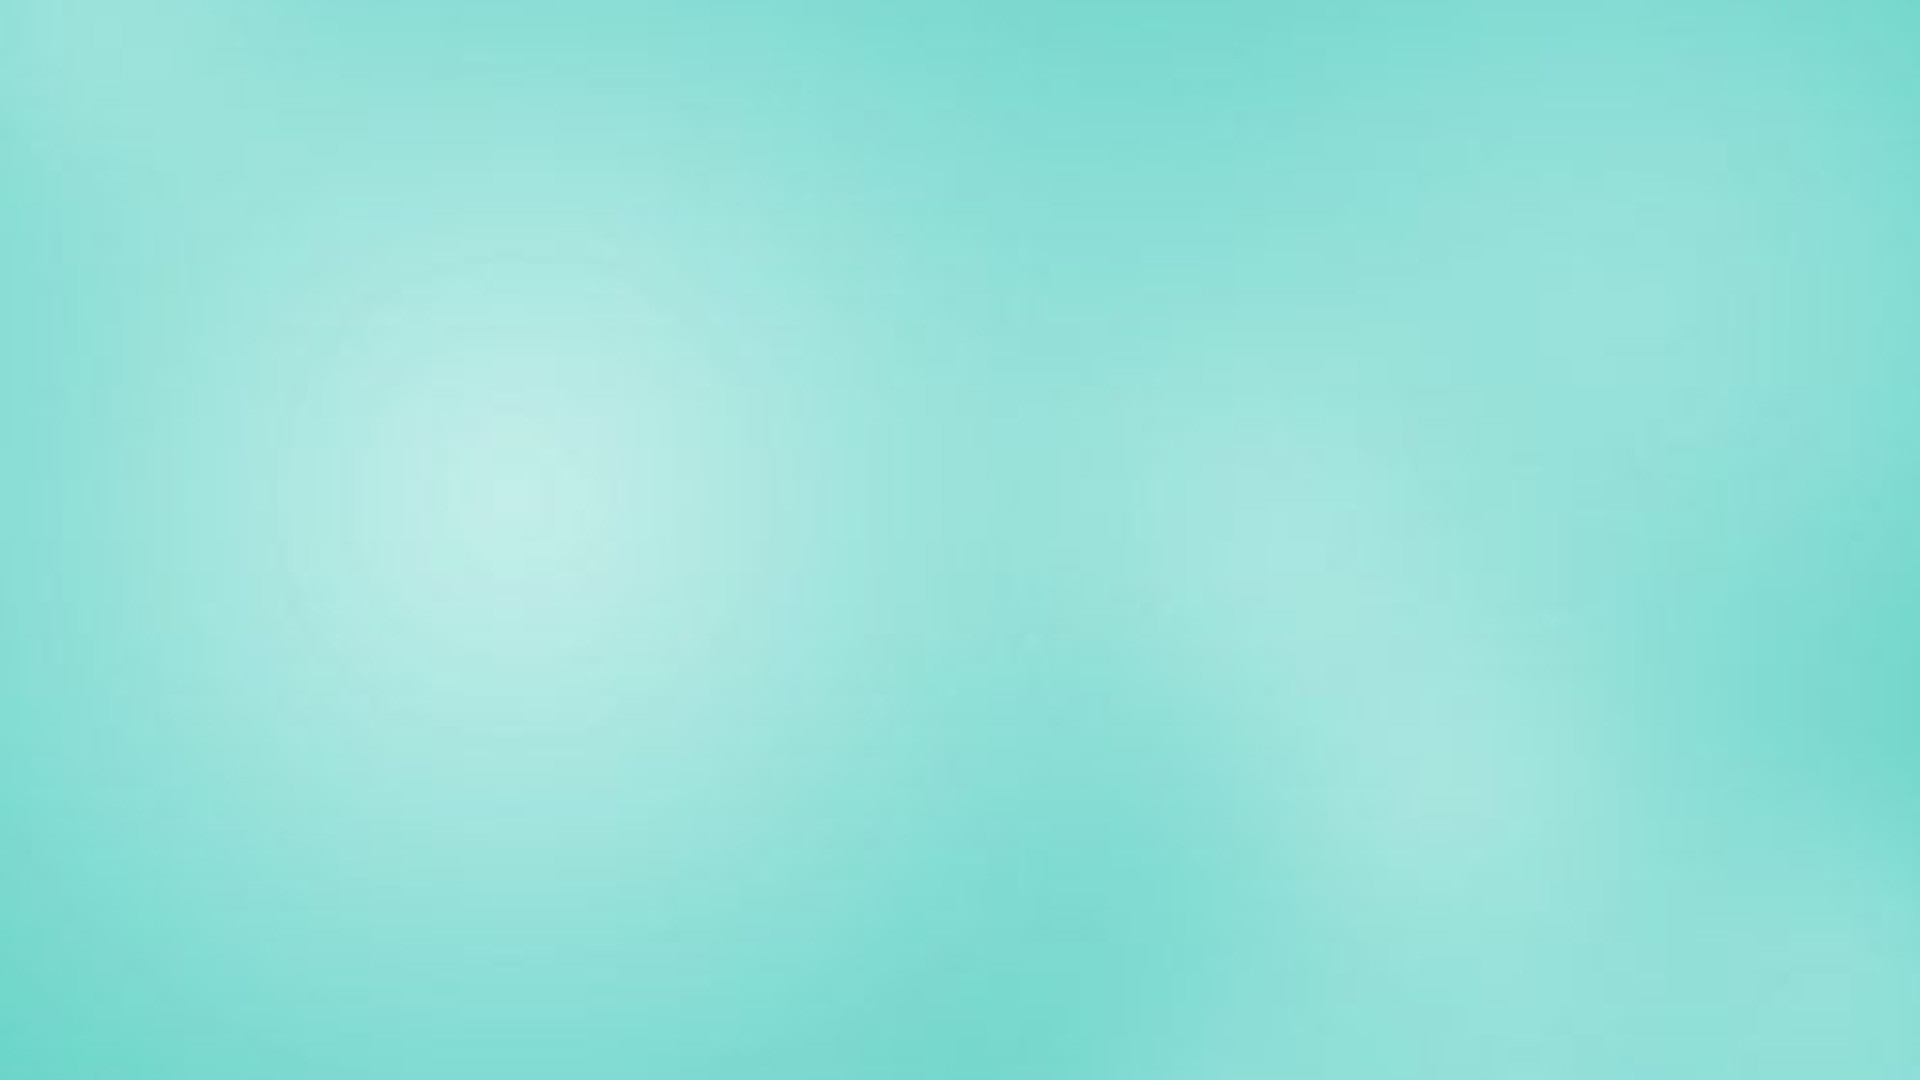 Abstract Mint Color Wallpaper in HD 1080p